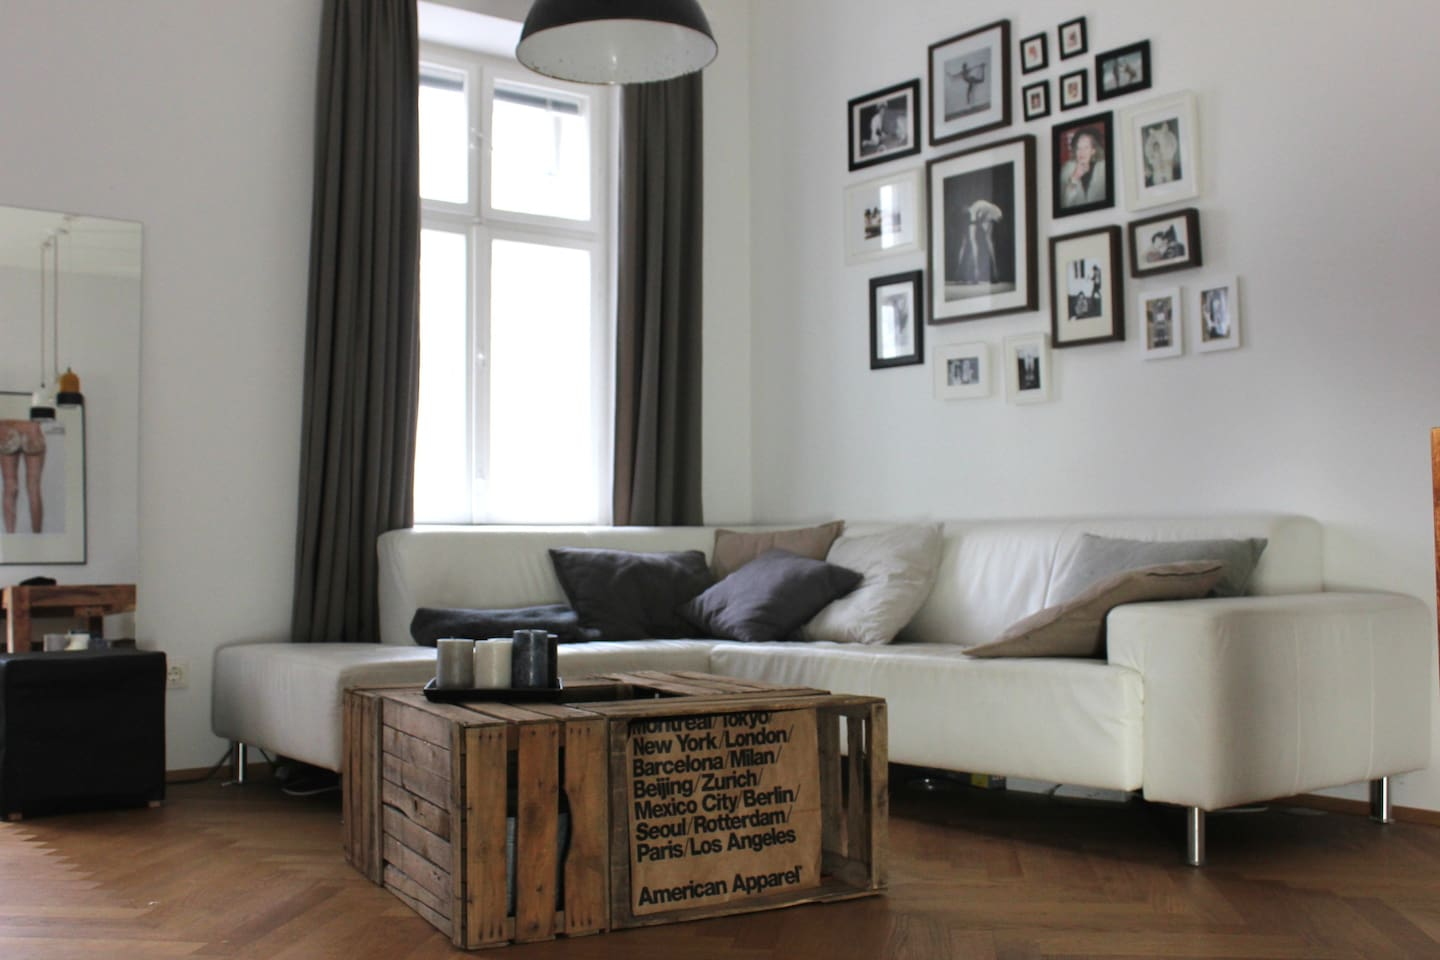 livingroom with couch, TV, dining table